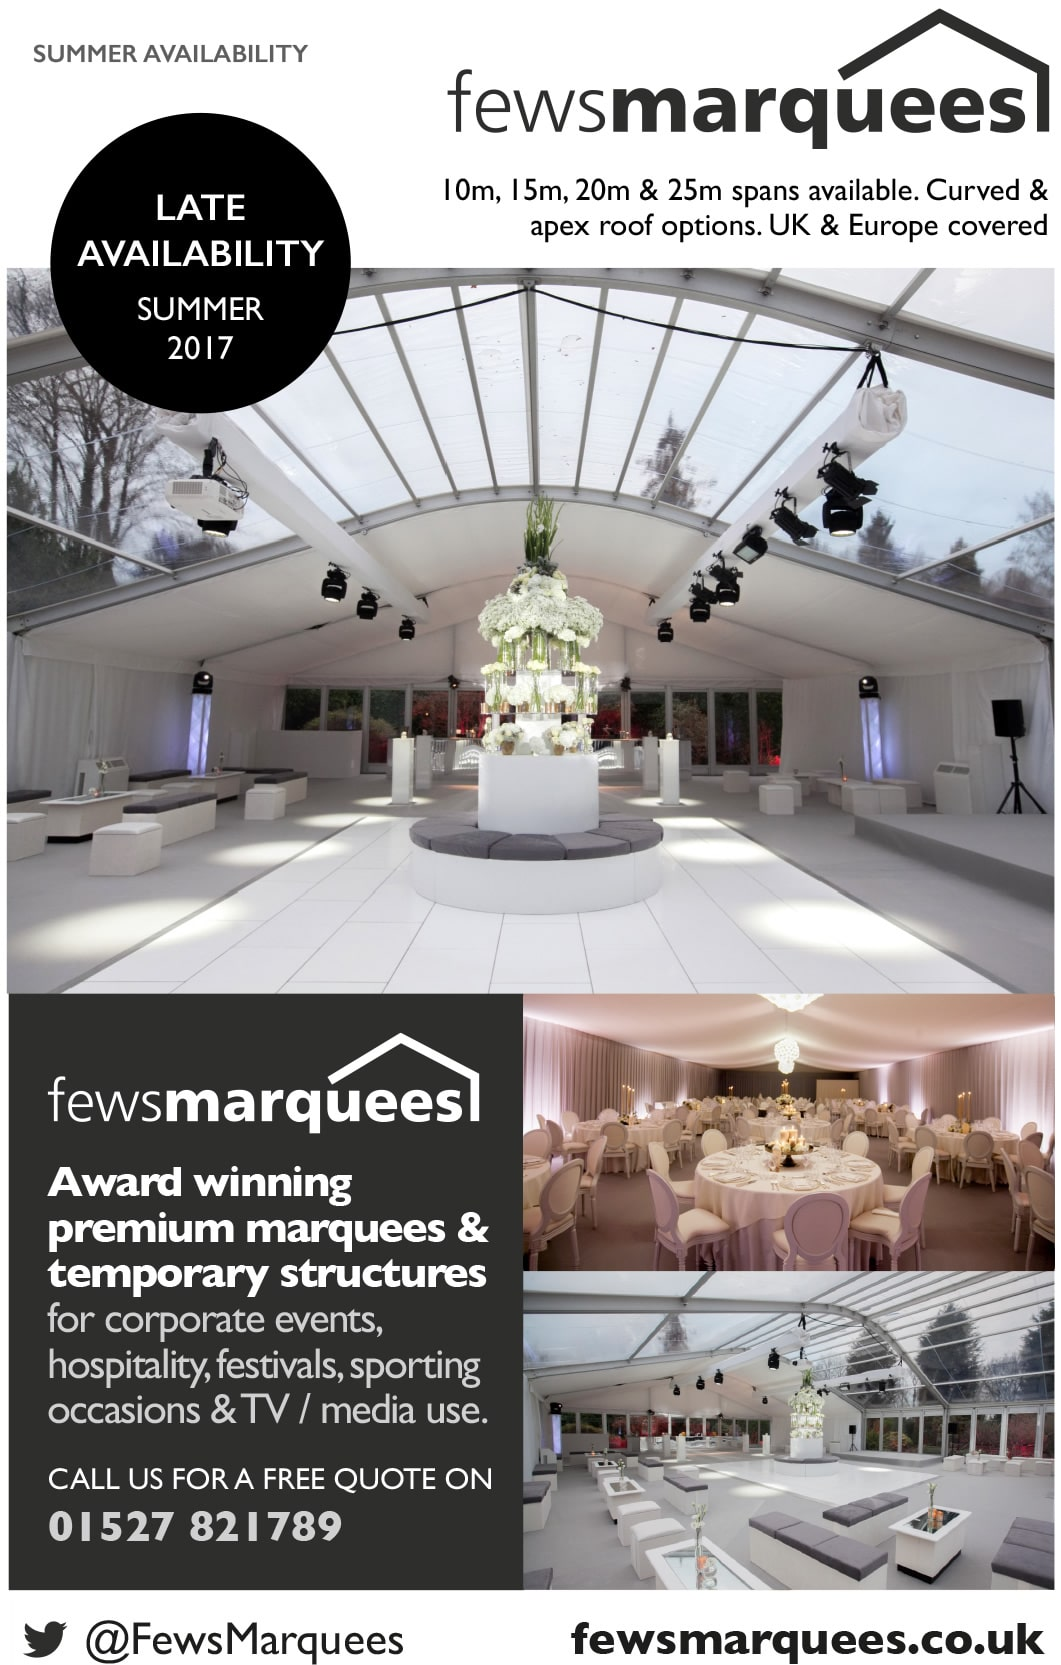 Fews-Marquees-June-Availability